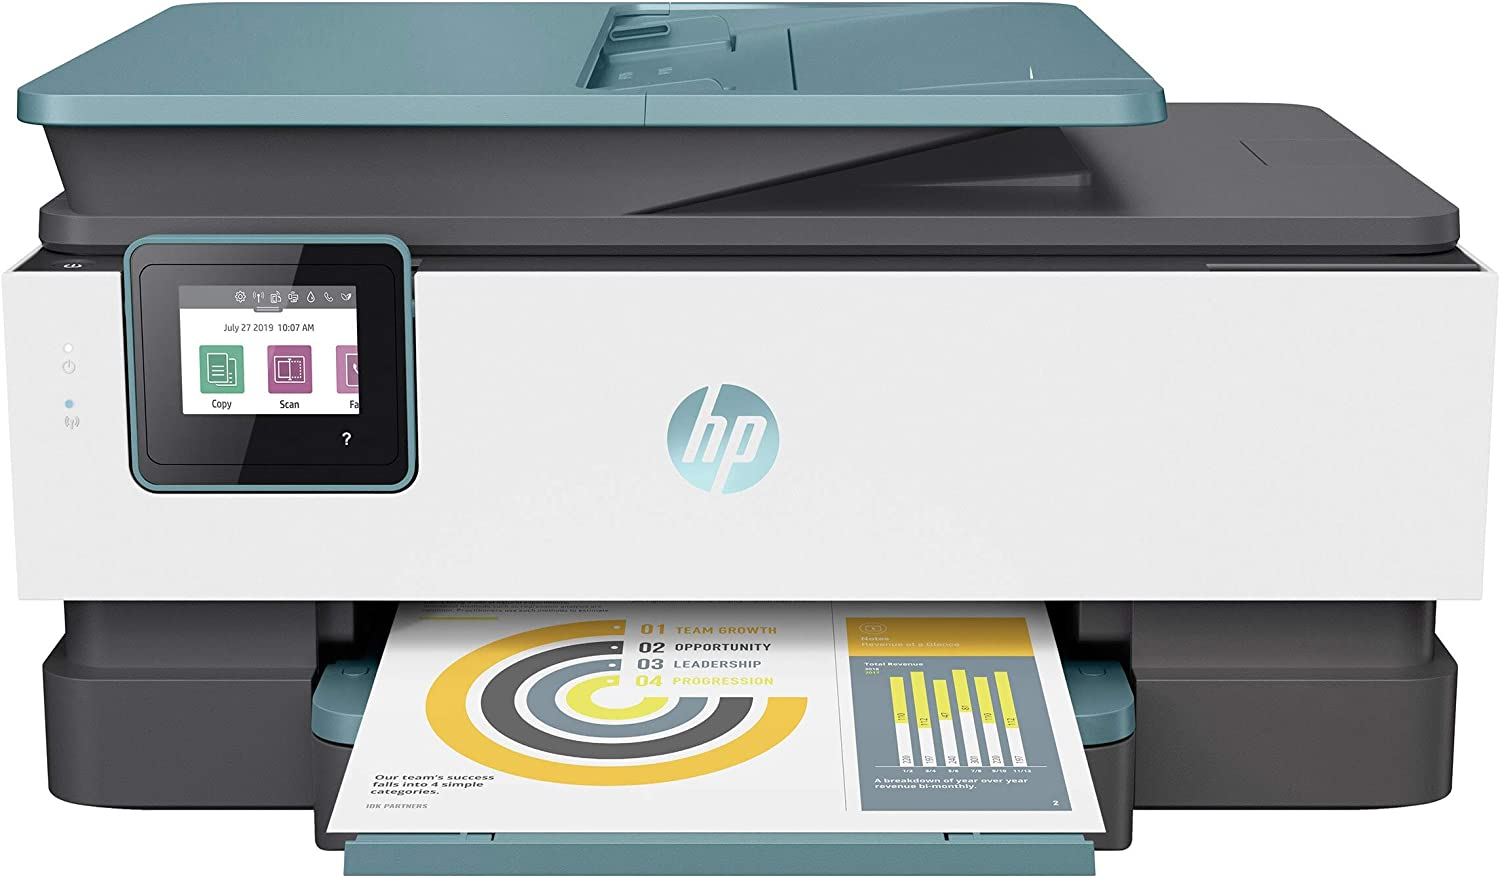 HP OfficeJet Pro 8000 Series All-in-One Color Inkjet Printer for Home Office - Print Copy Scan Fax - 20 ppm, Duplex Print, Voice-Activated, 35-Page ADF, WiFi and Cloud-Based Wireless Printing - Blue